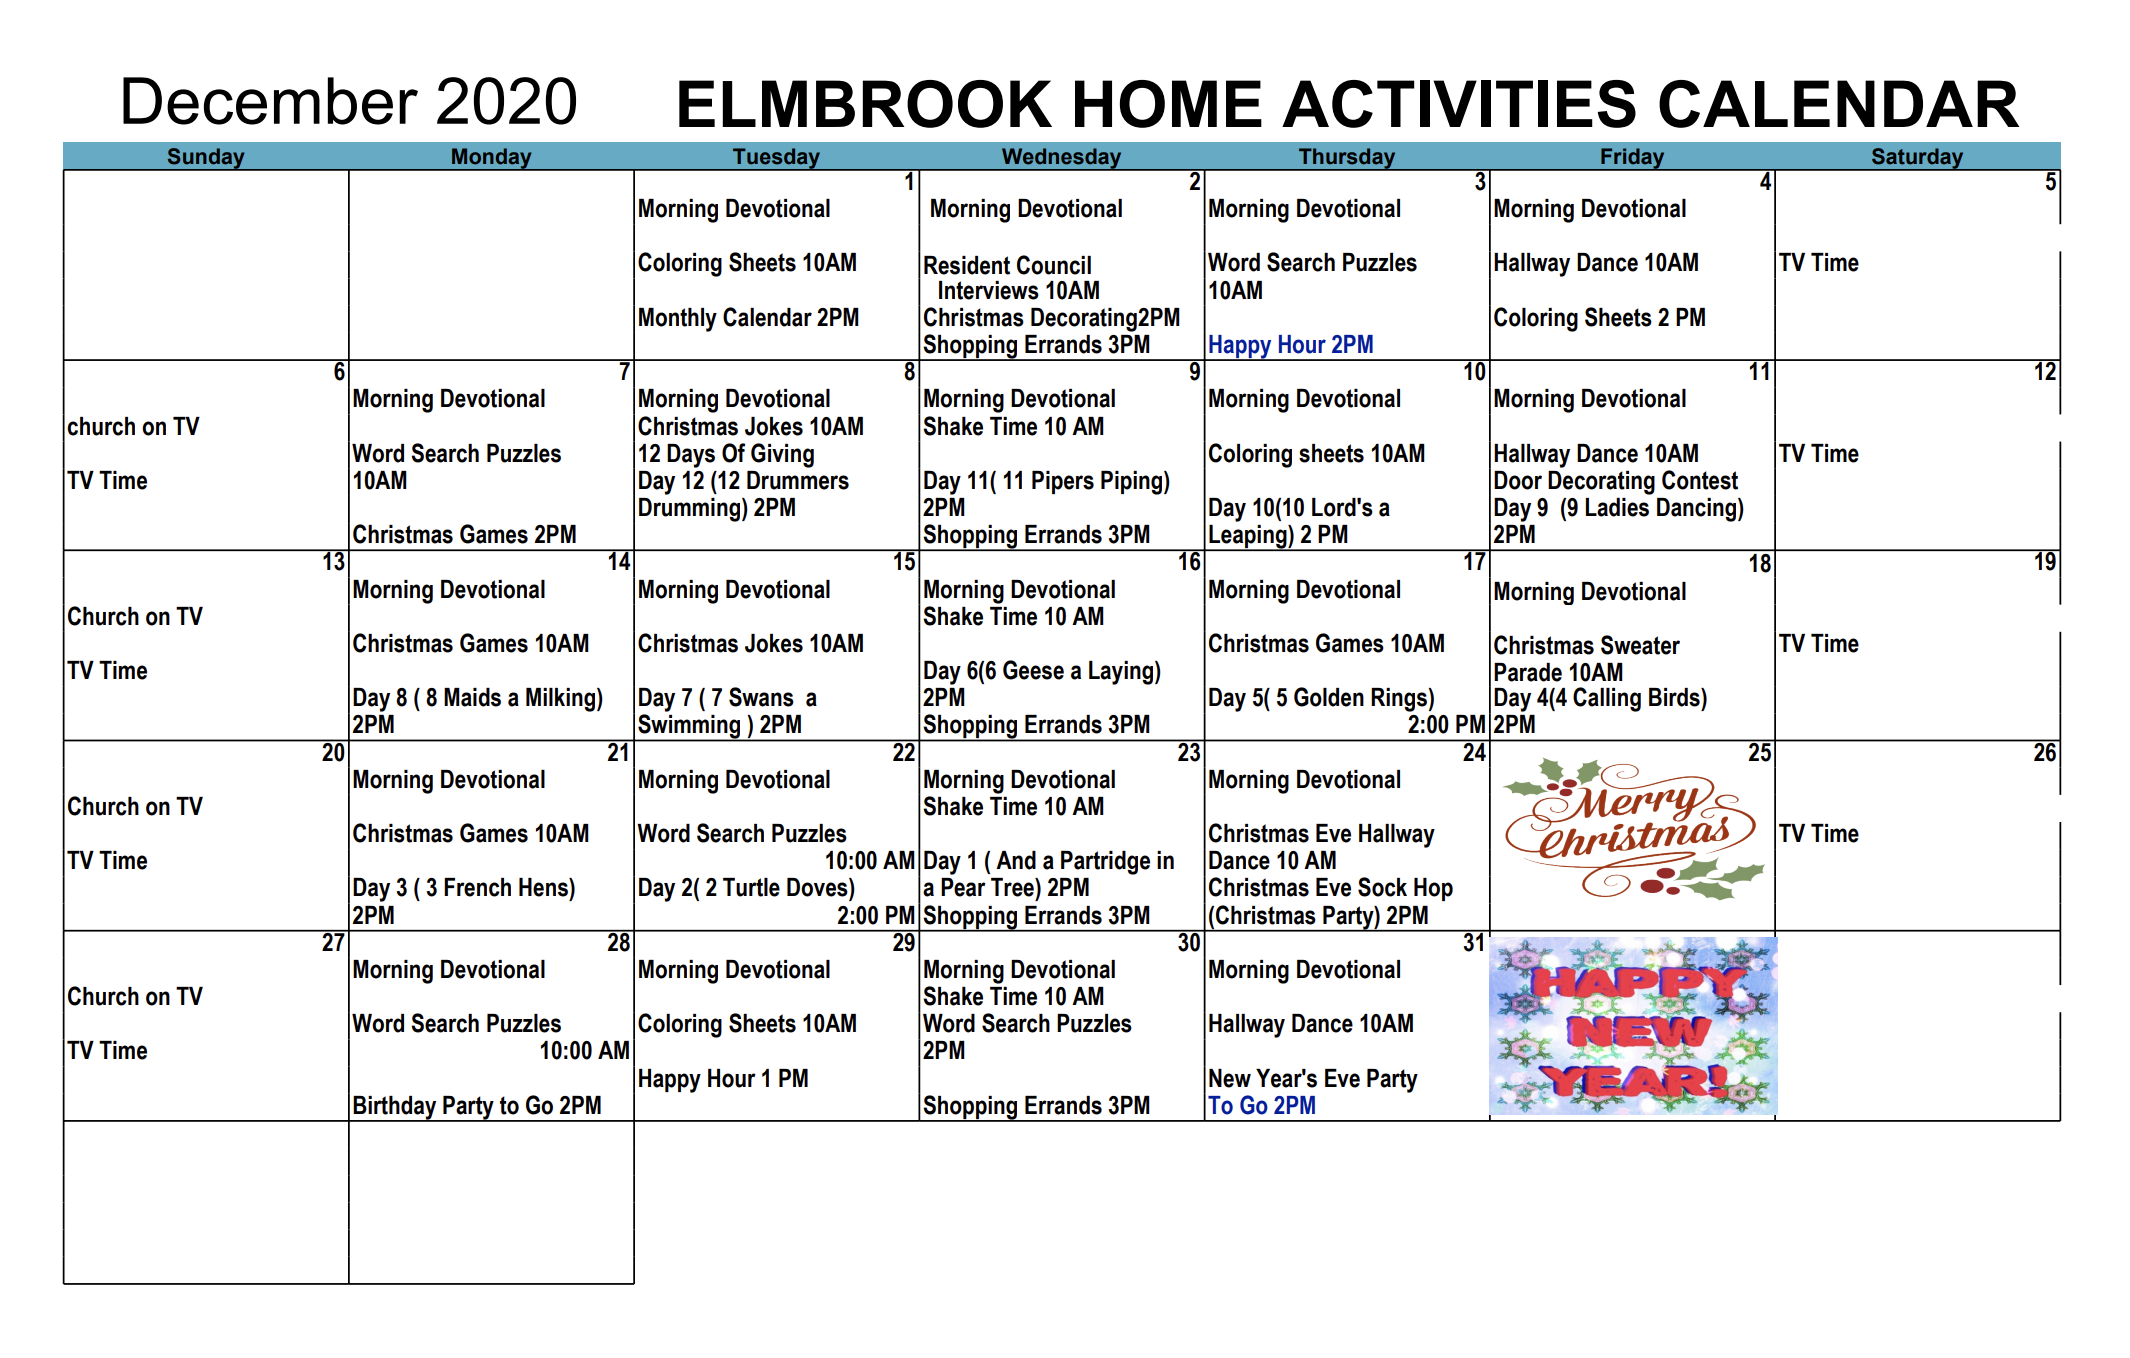 Elmbrook 2020 Calendar For December